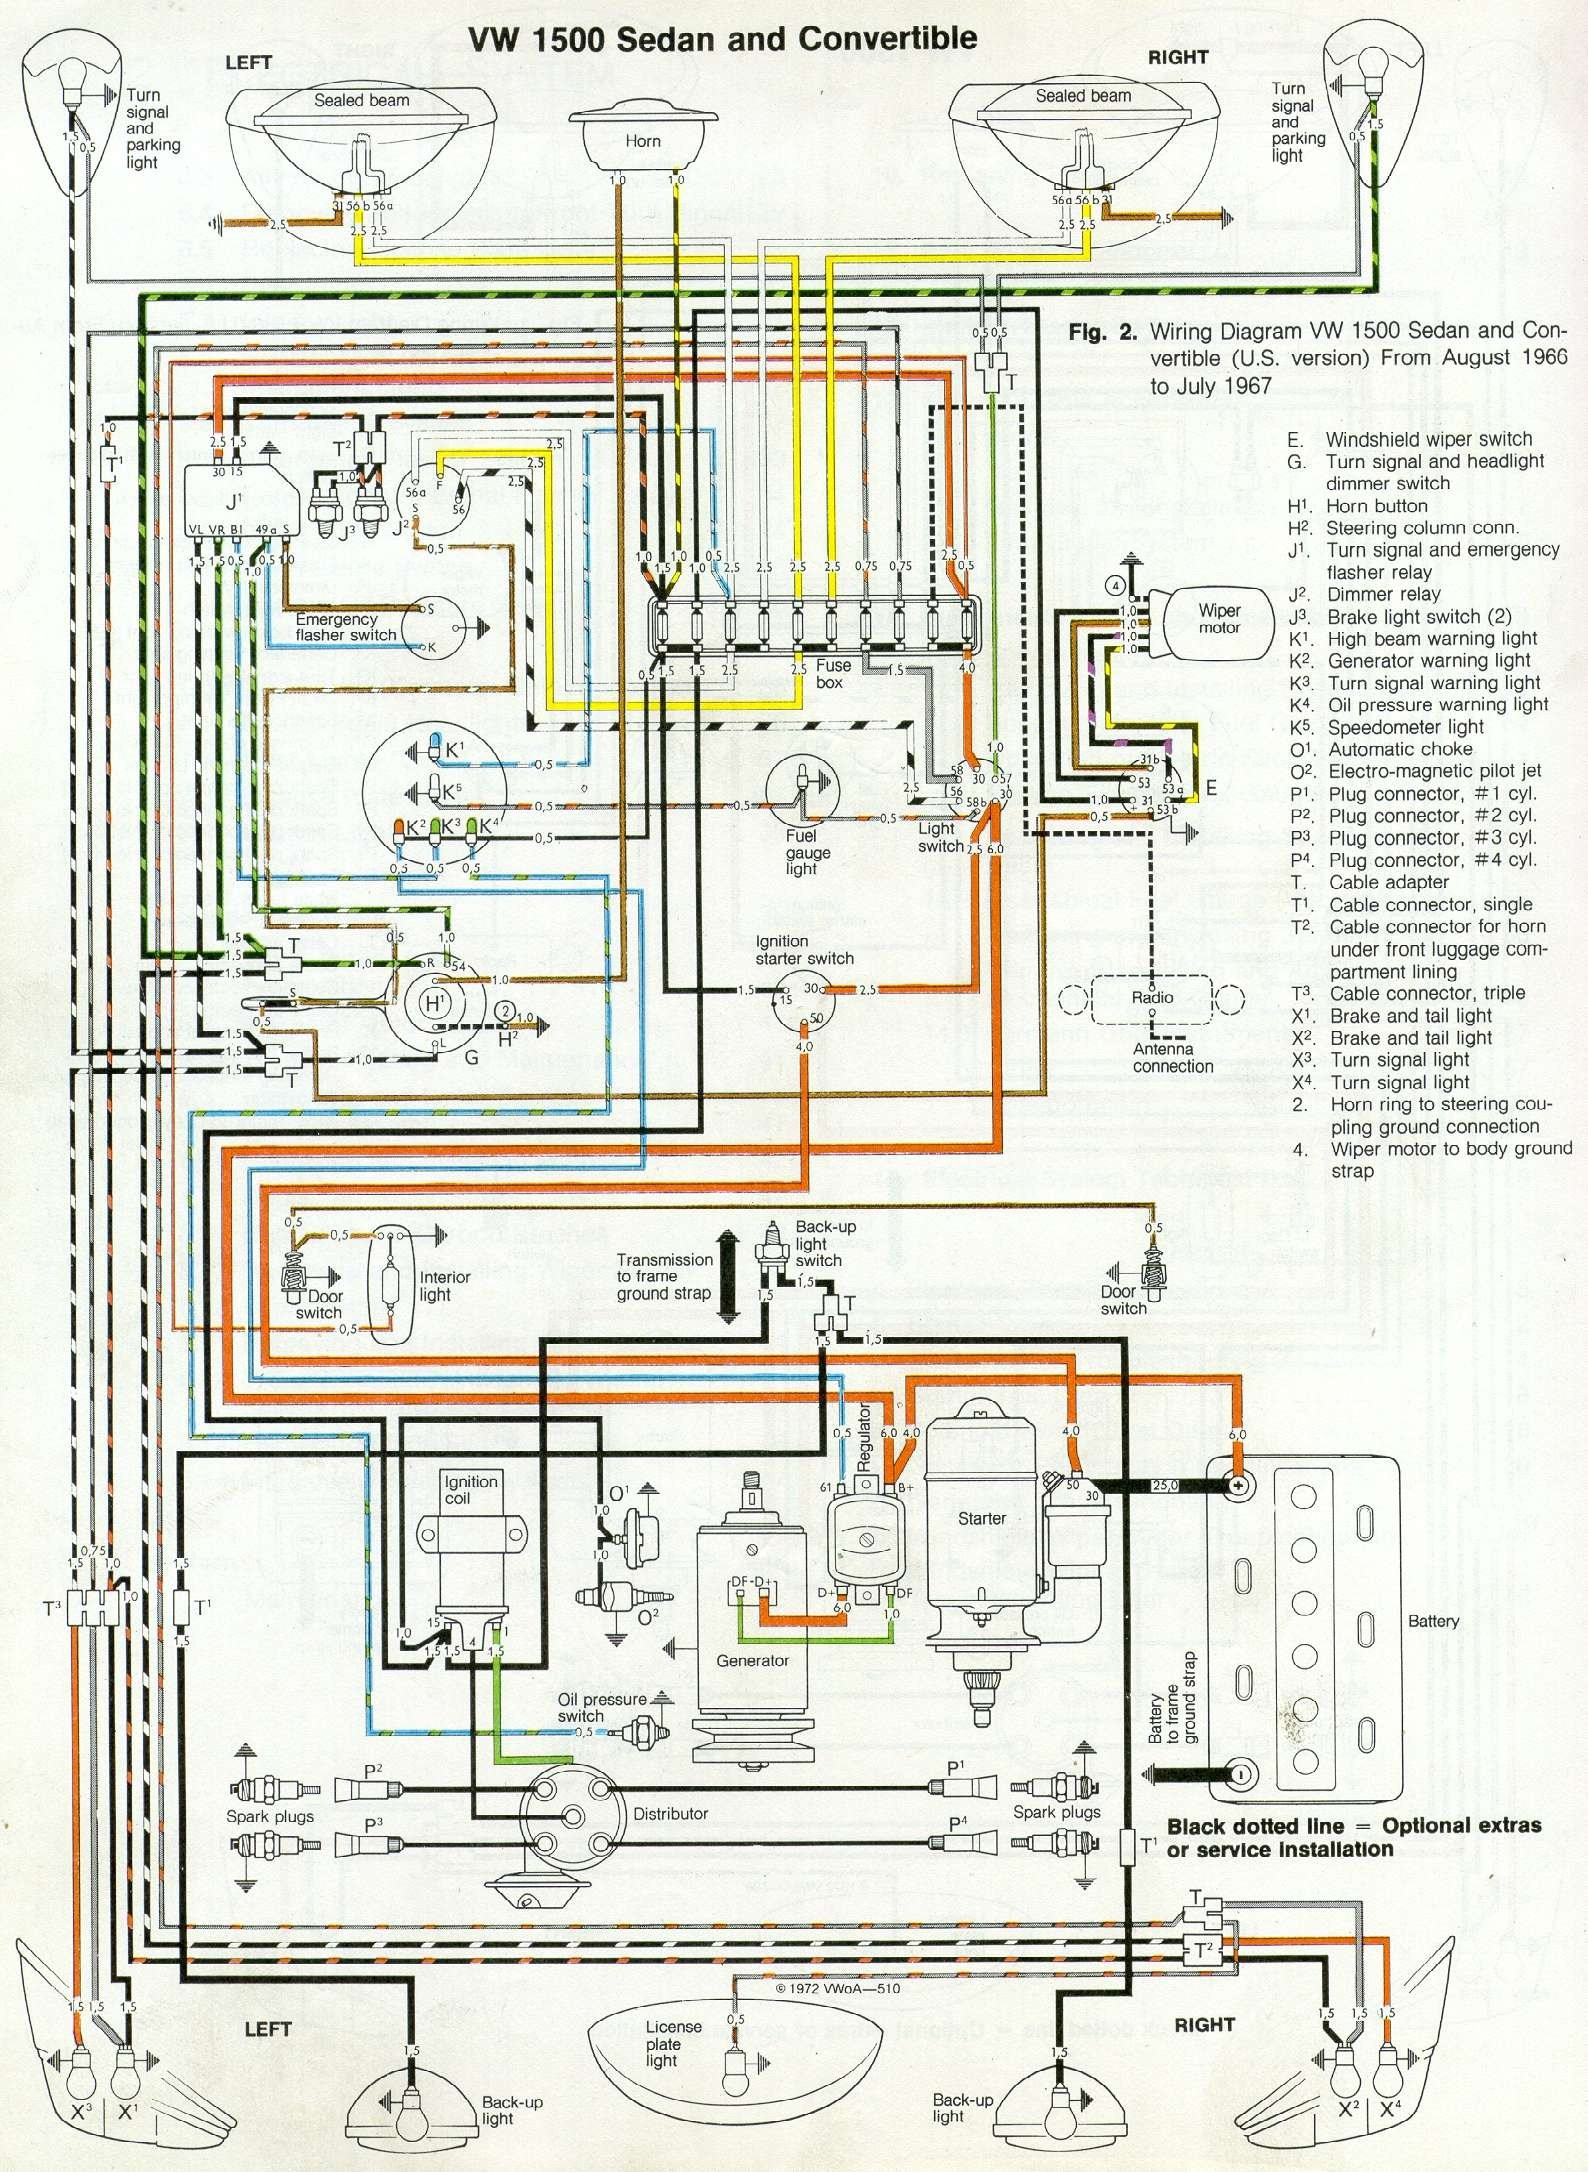 VW Beetle Wiring Digram 67 beetle wiring diagram u s version 1967 vw beetle vw bug wiring diagram at eliteediting.co